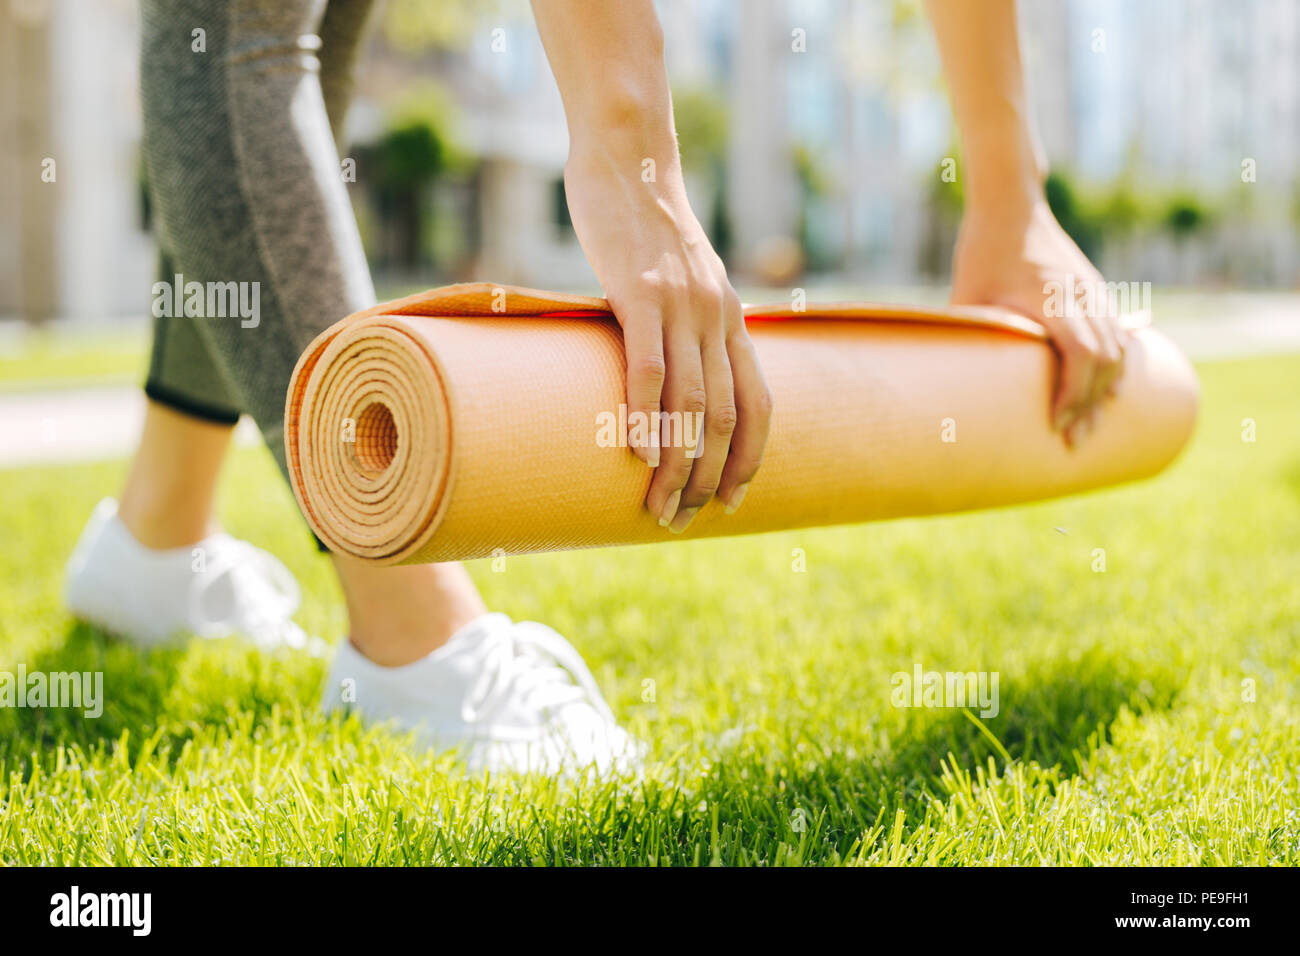 Yoga mat being put on the grass - Stock Image